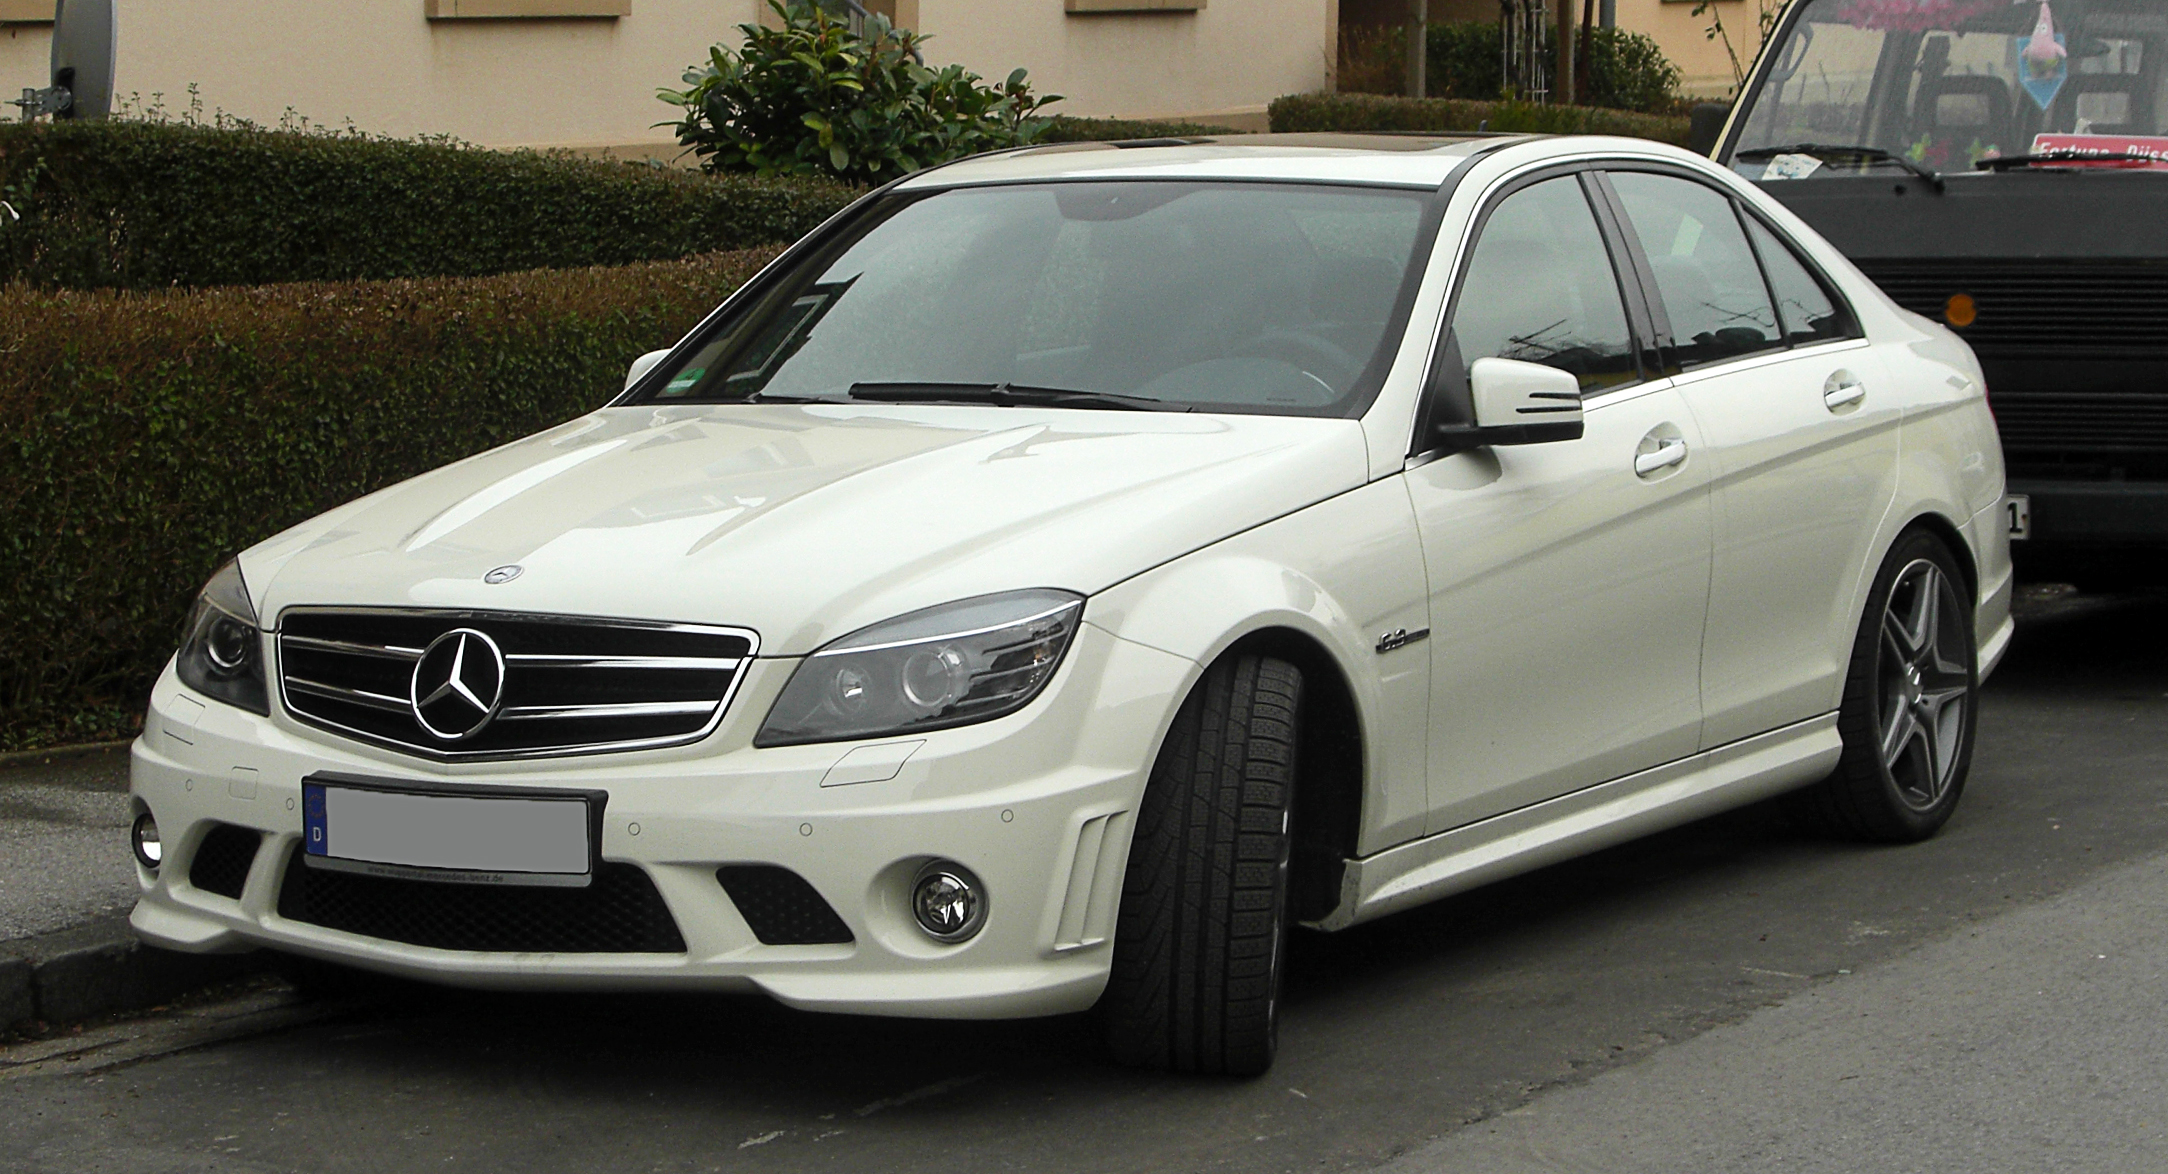 file mercedes benz c 63 amg w 204 frontansicht 26 februar 2011 w wikimedia. Black Bedroom Furniture Sets. Home Design Ideas